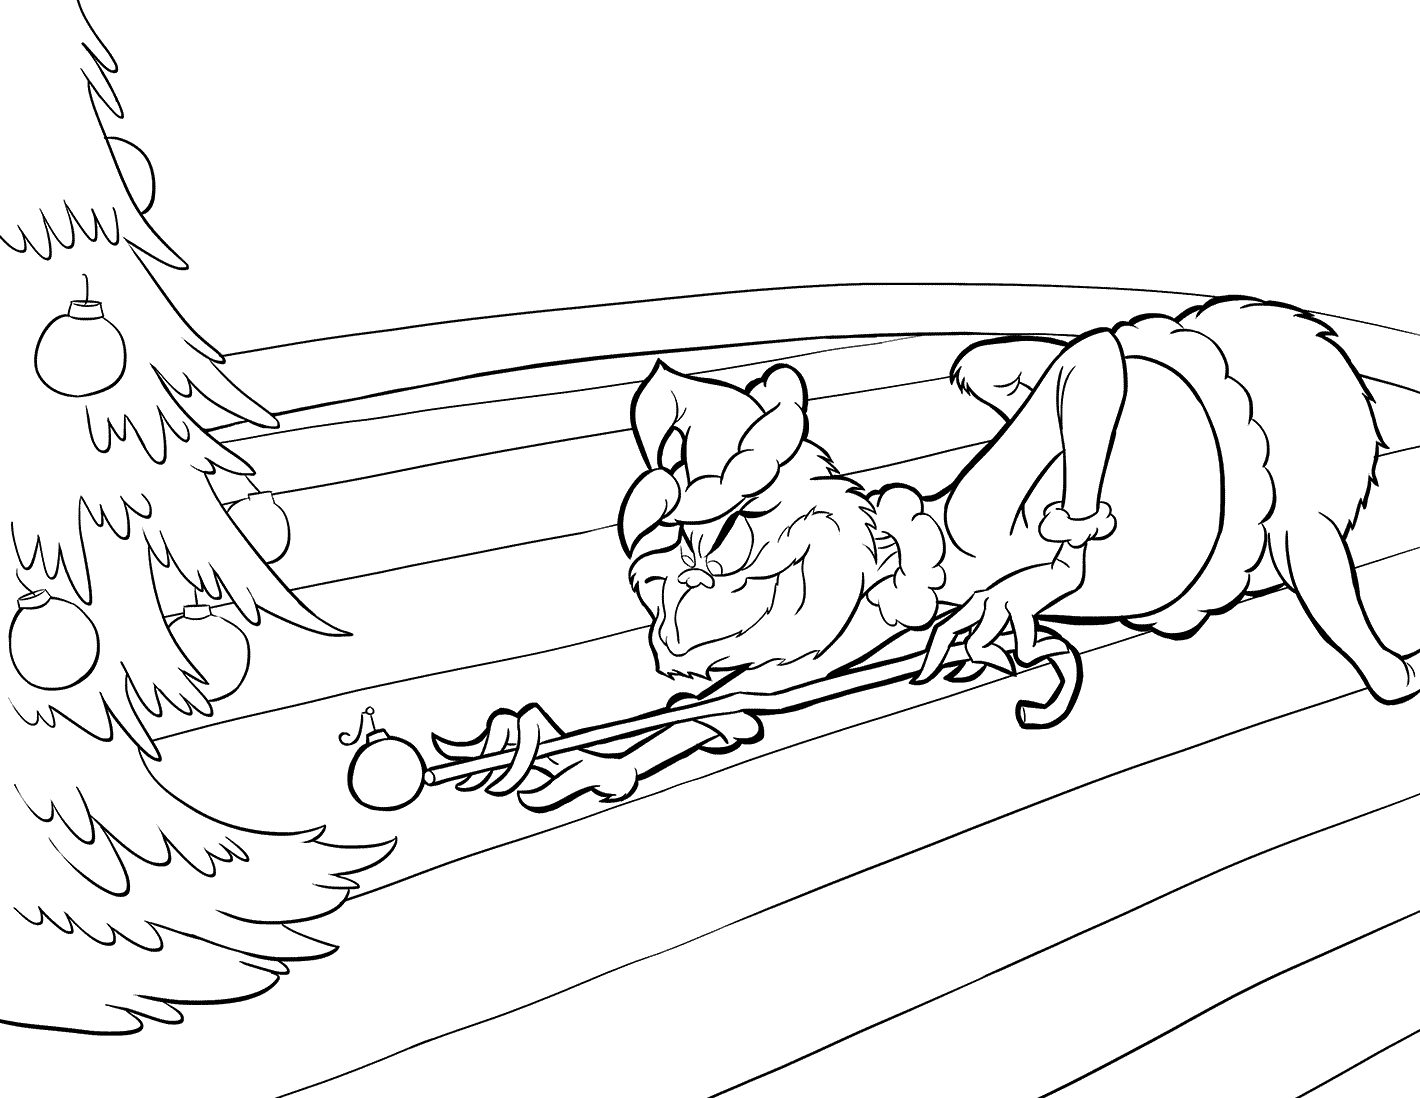 Grinch Stealing Ornaments Coloring Page